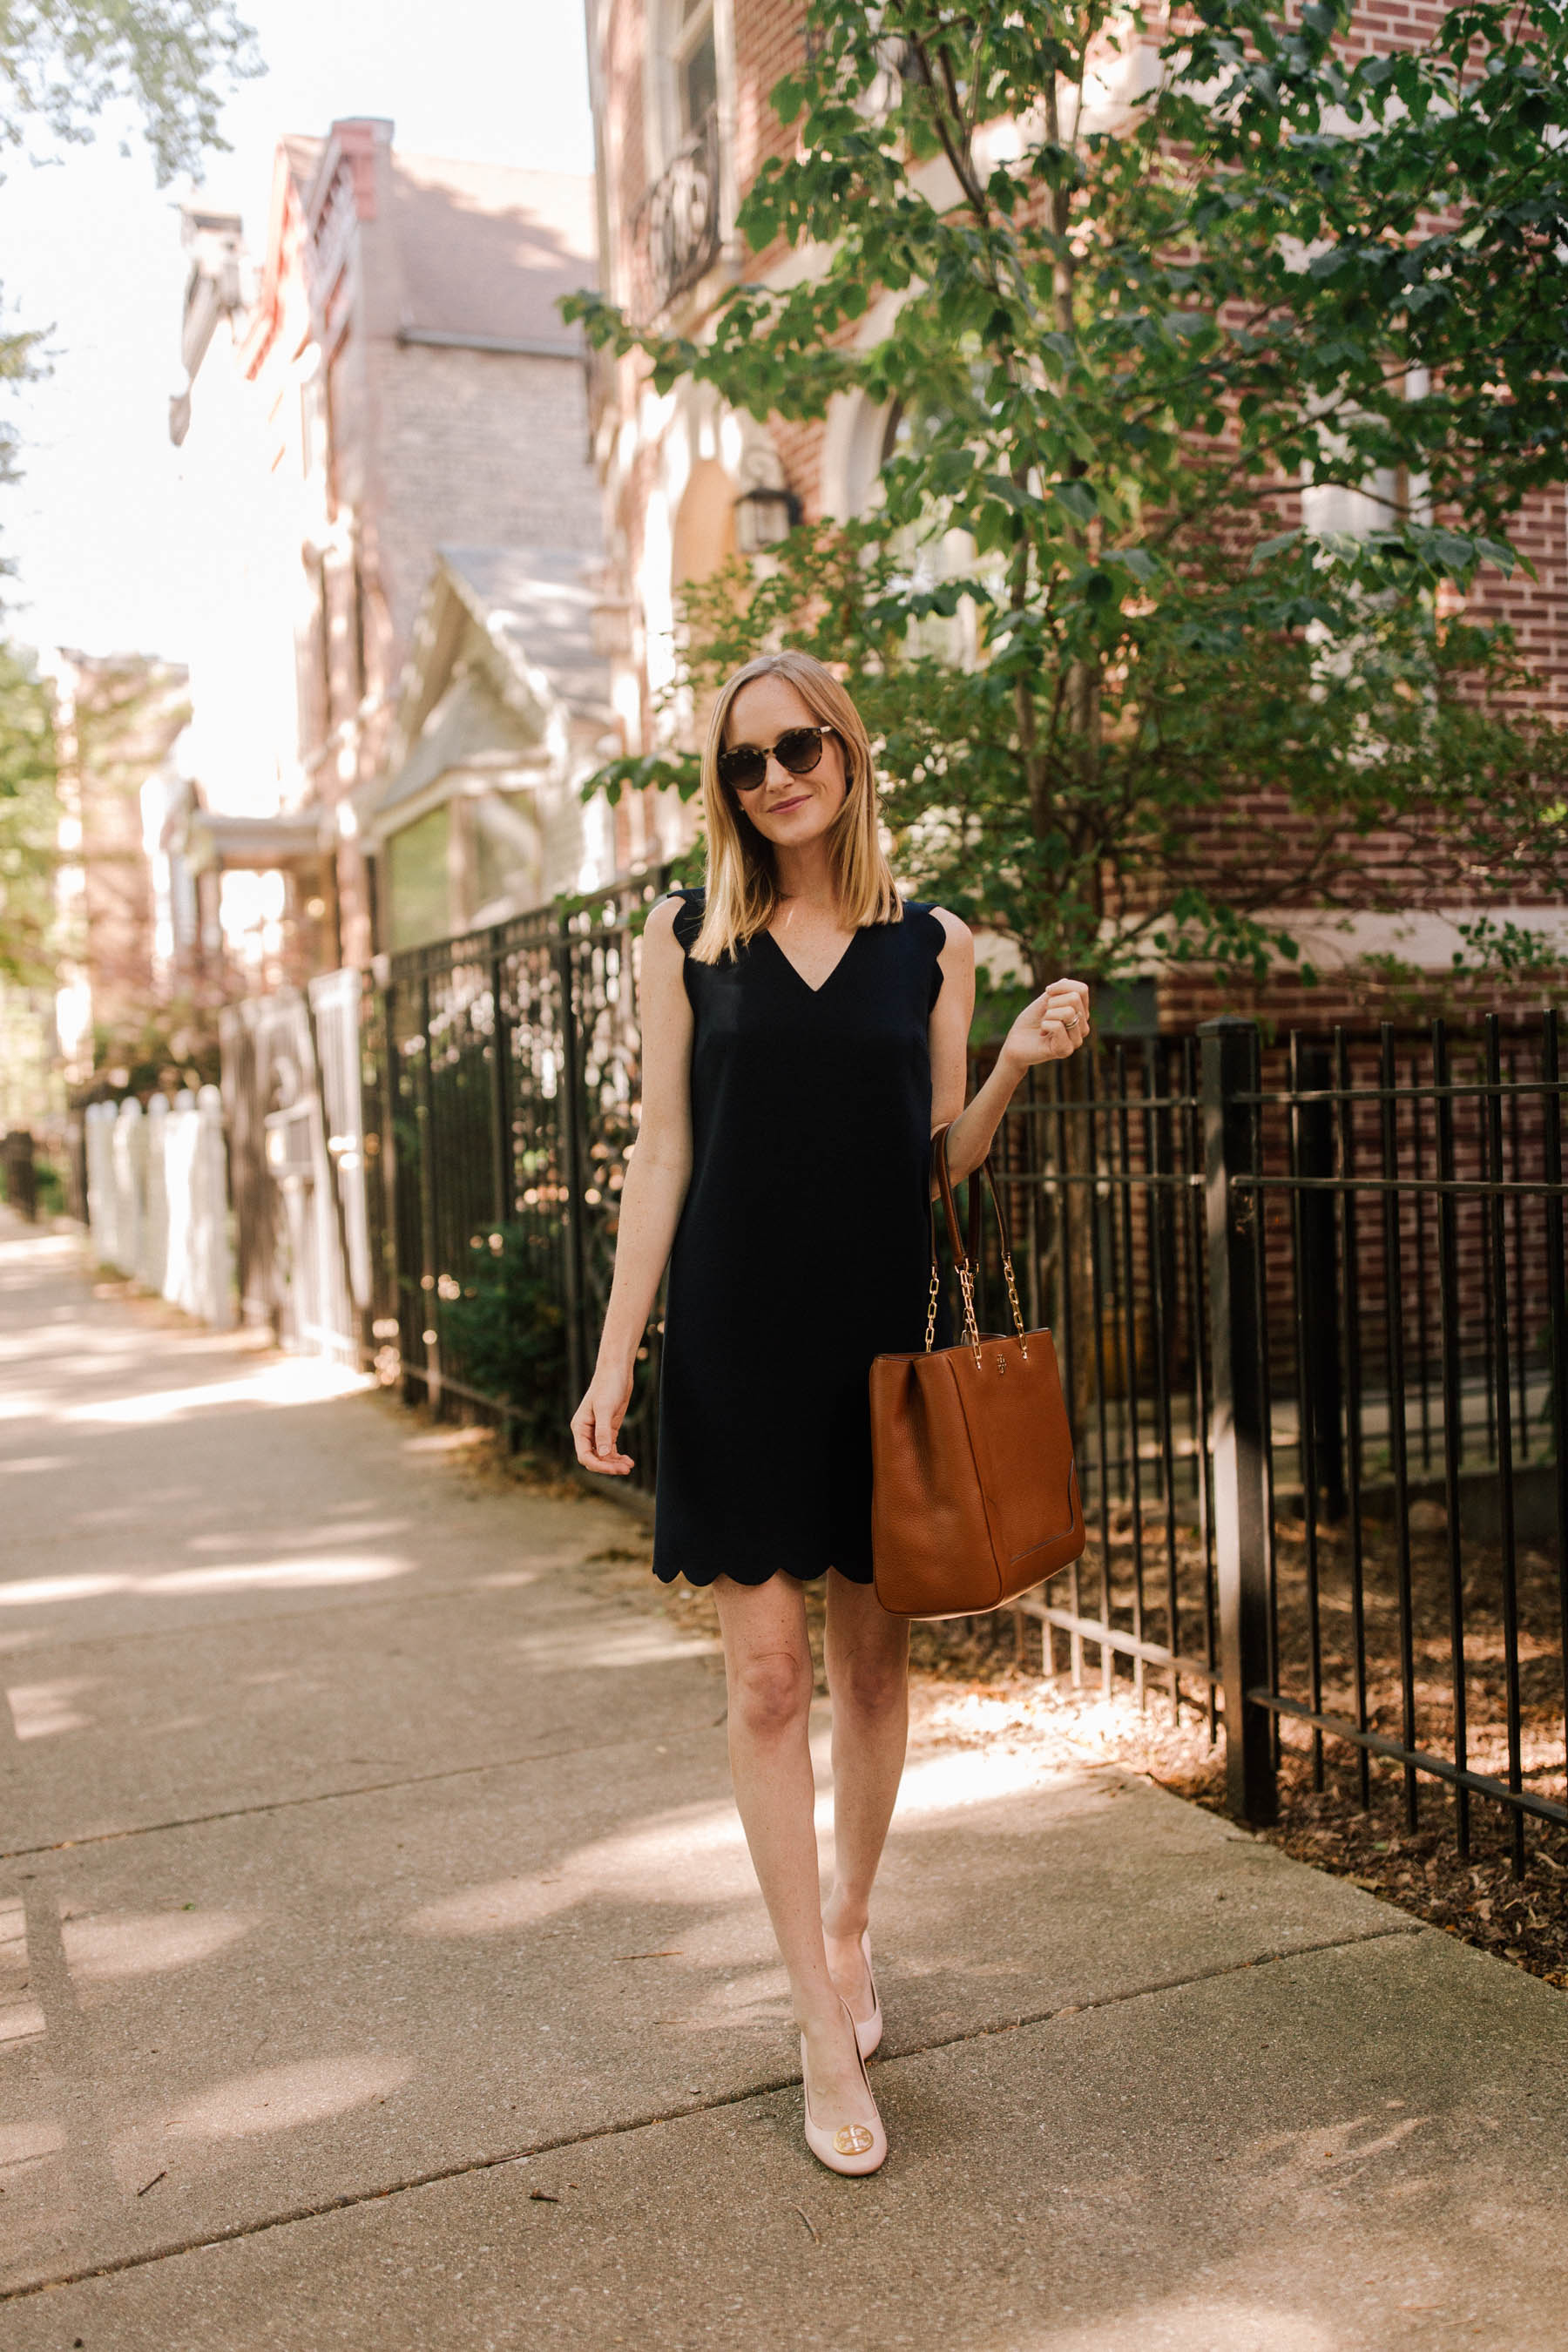 CeCe Scalloped Dress / Tory Burch Benton Pump / Tory Burch Marsden Pebbled Leather Tote